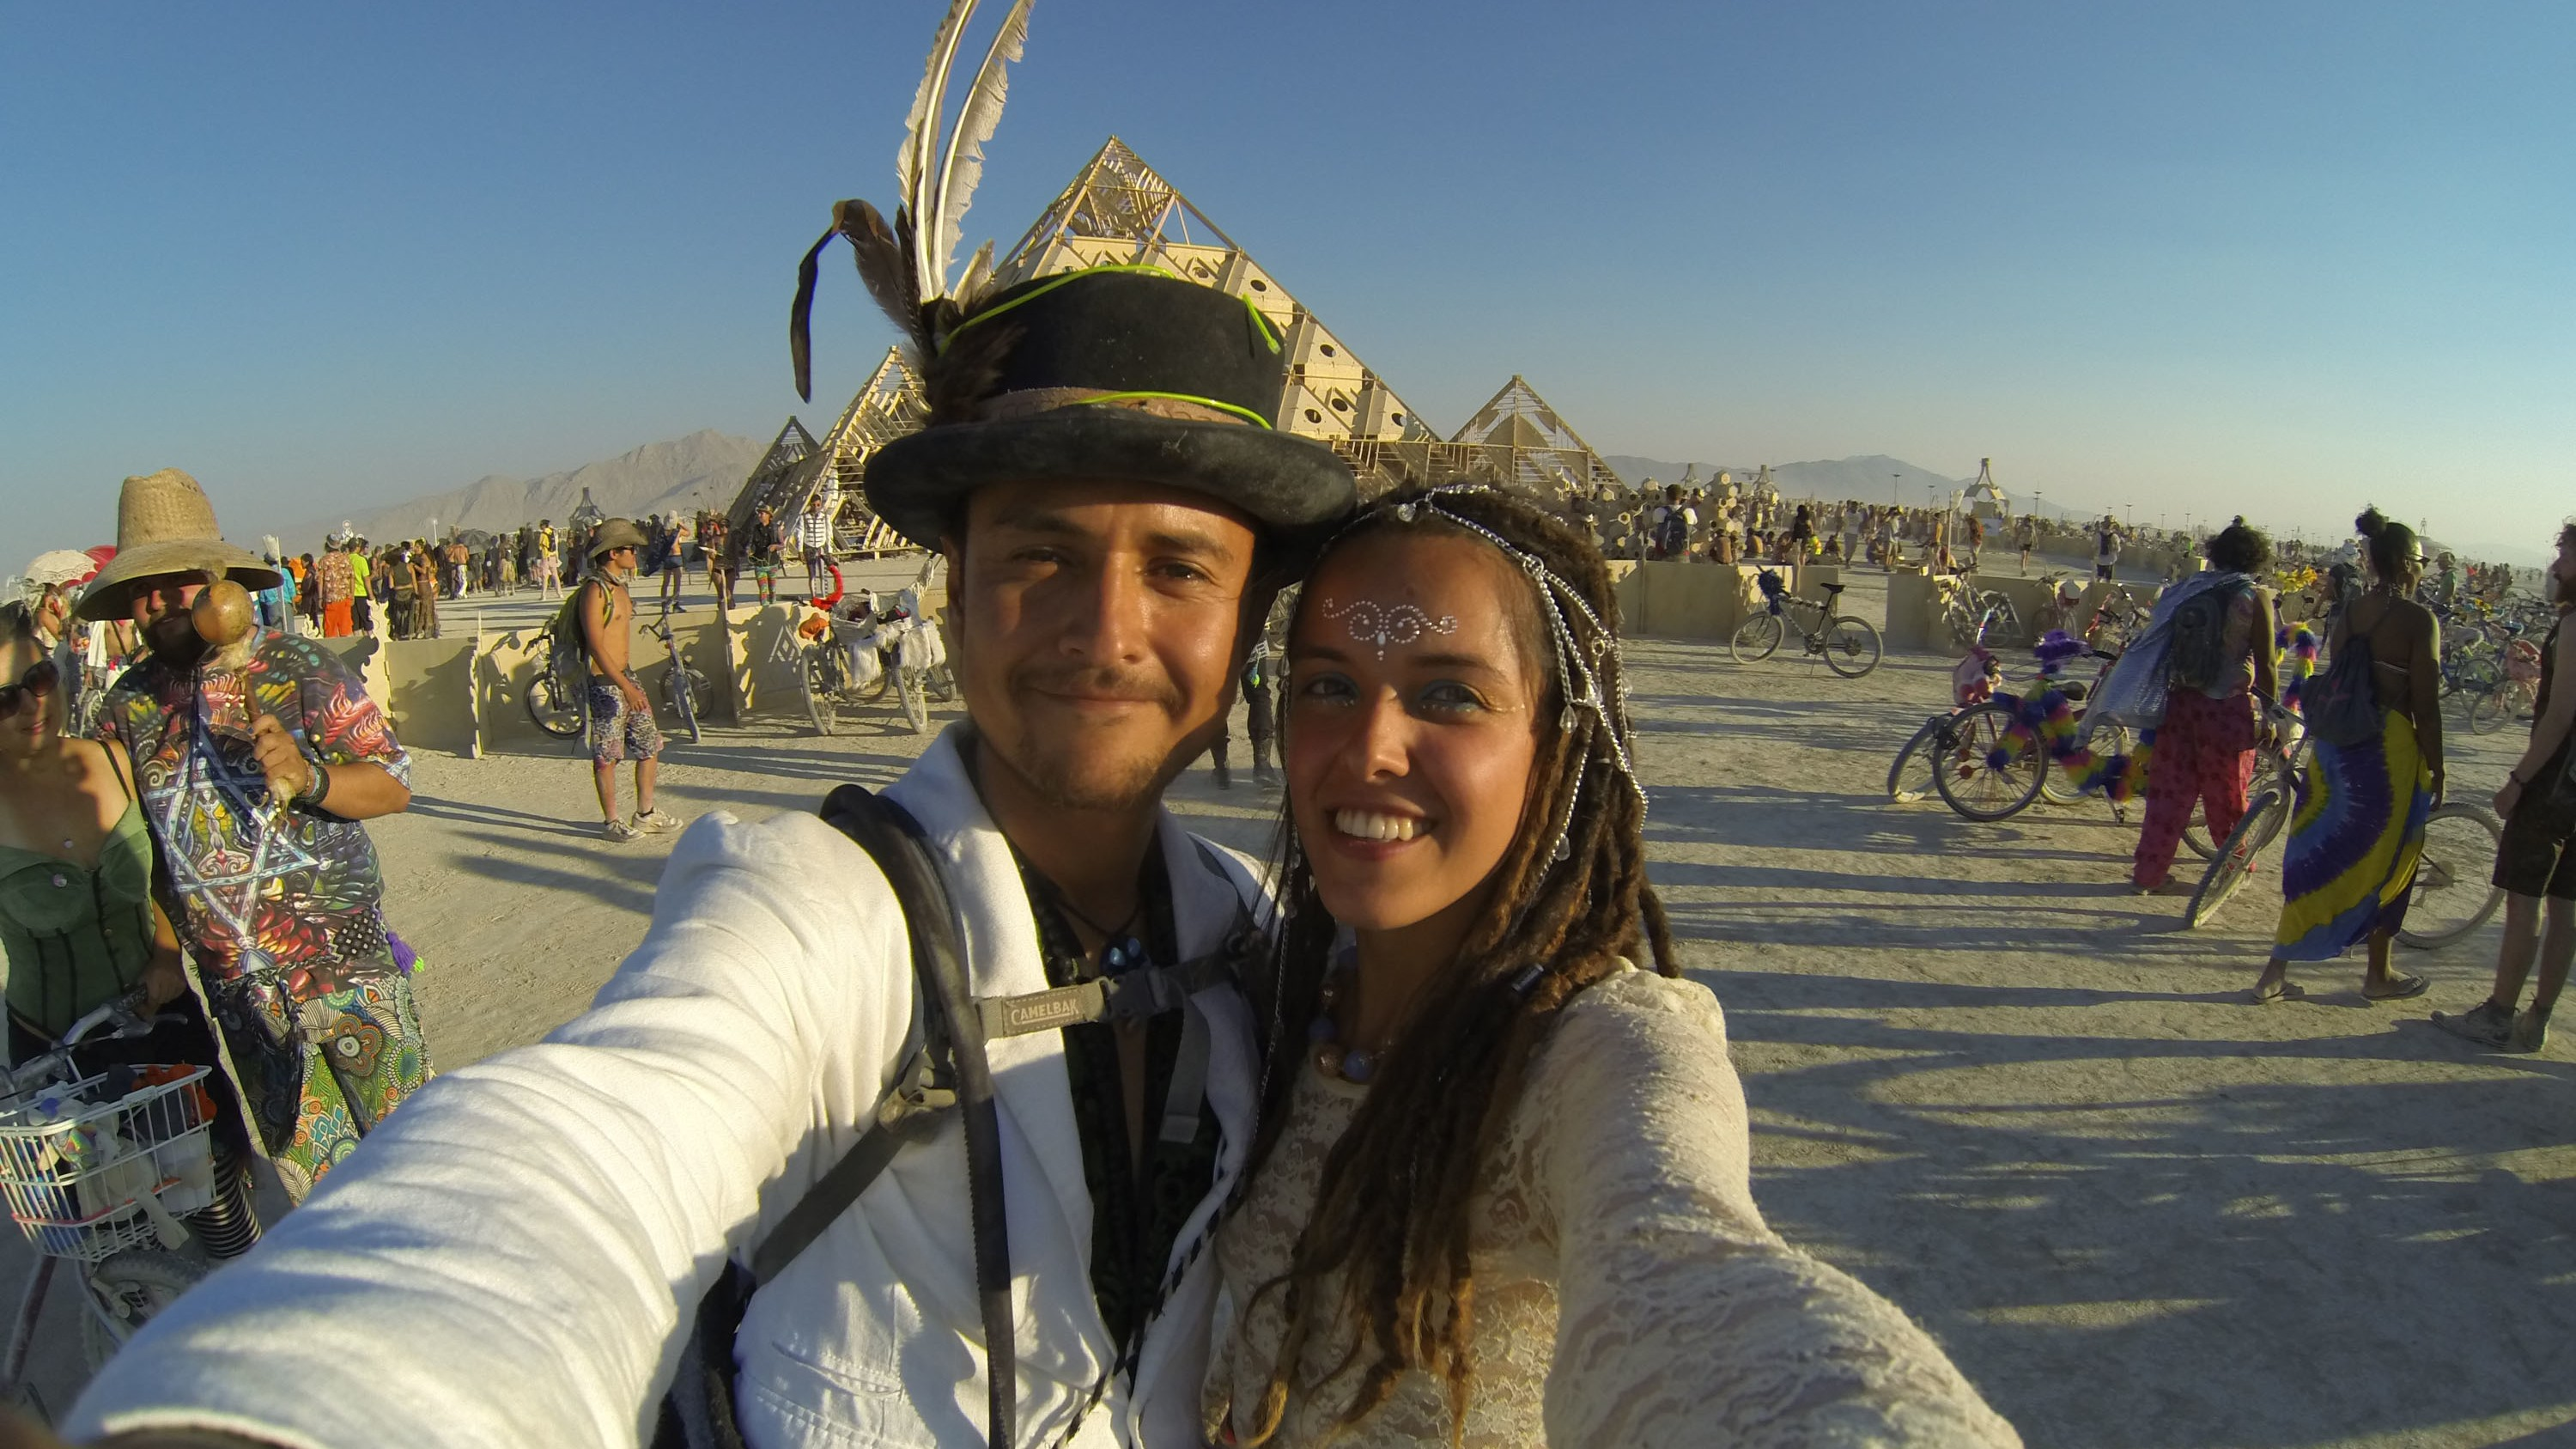 What It's Like to Get Married at Burning Man